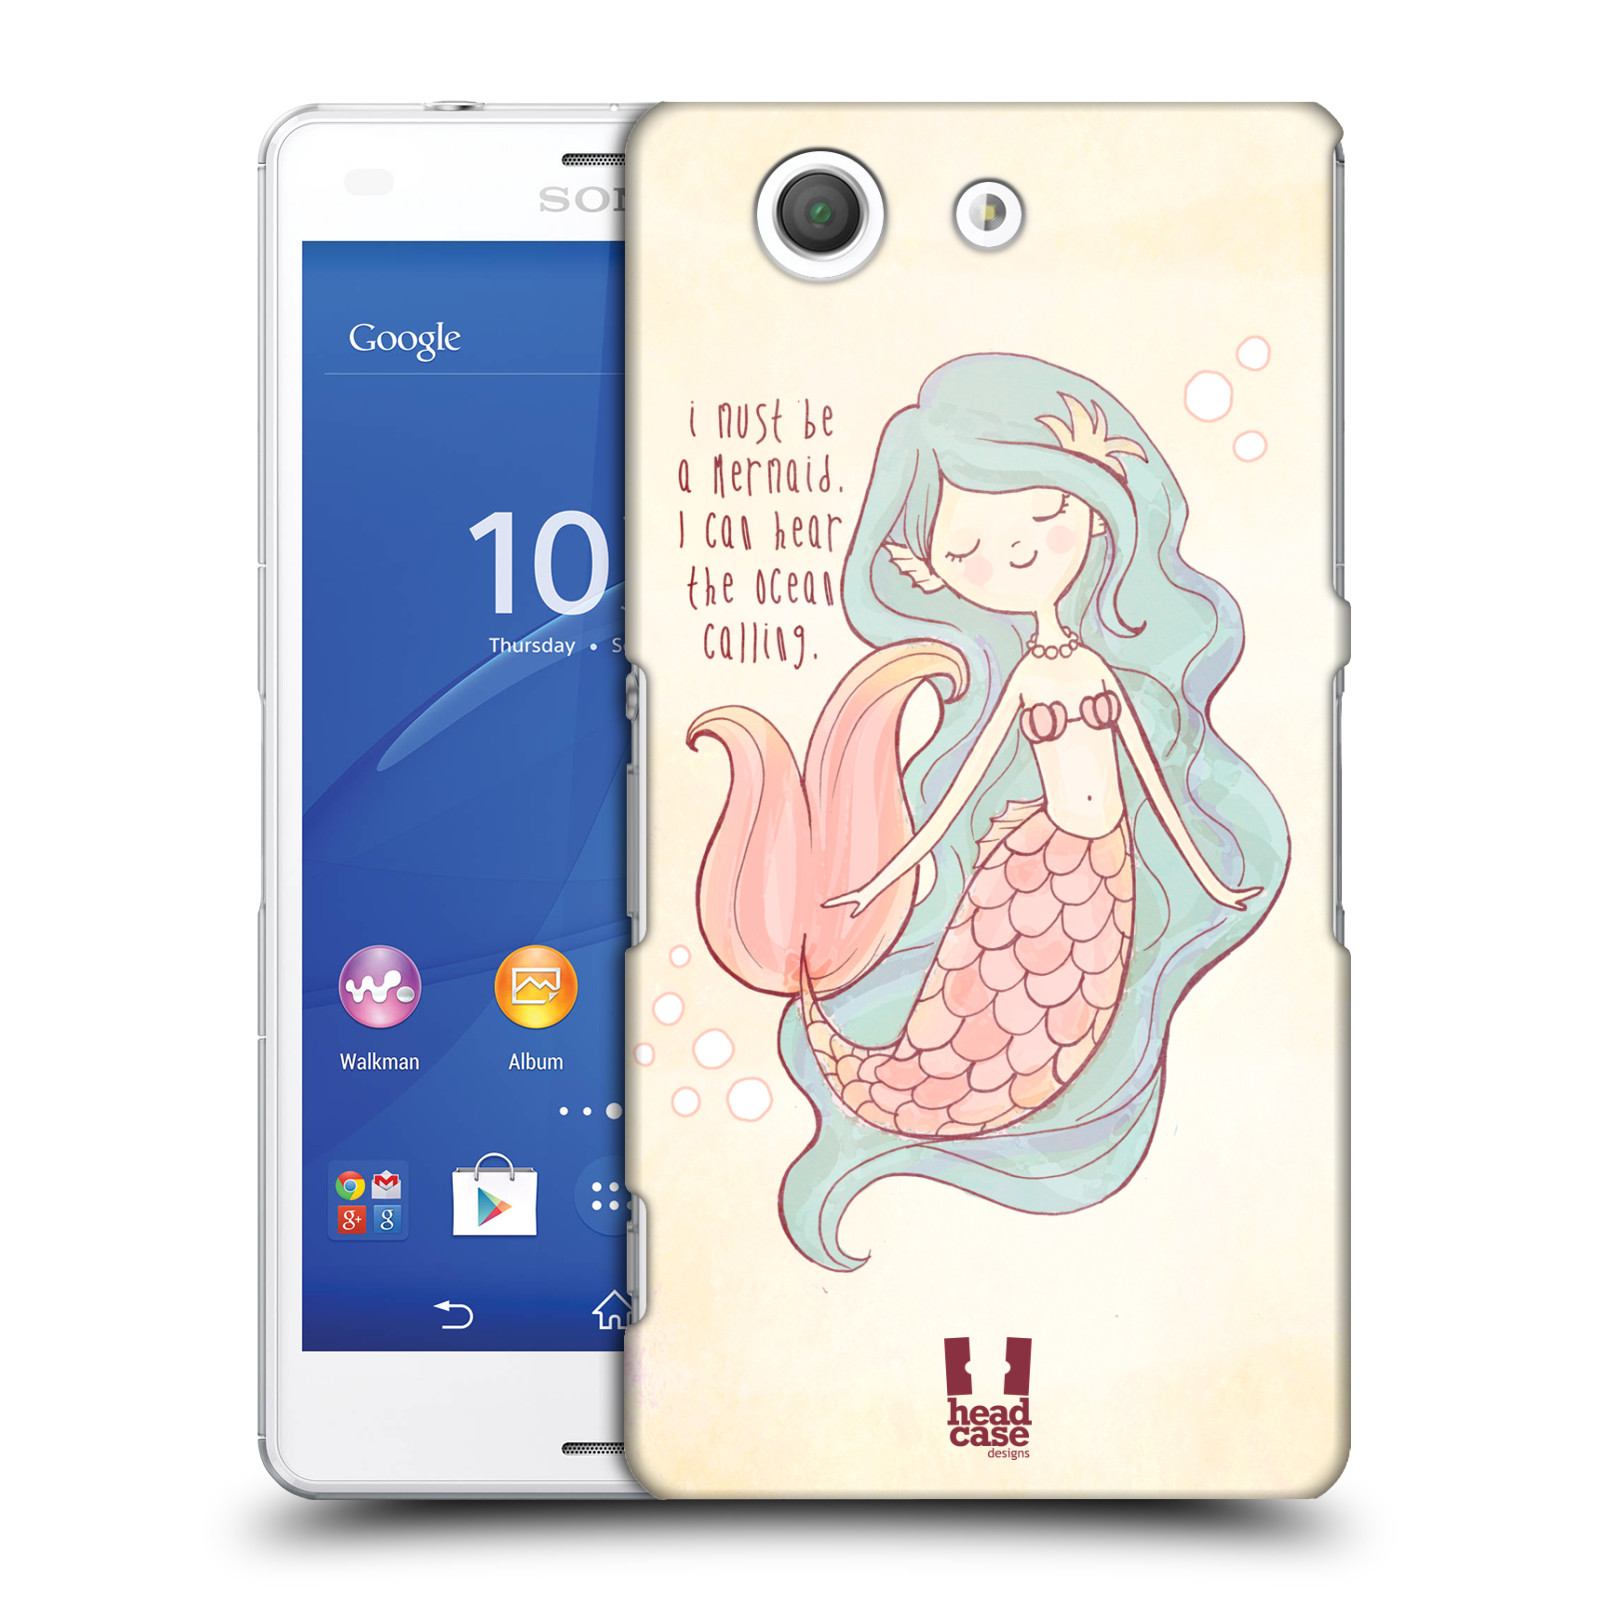 HEAD CASE DESIGNS MY KIND OF SUMMER CASE COVER FOR SONY XPERIA Z3 COMPACT D5833